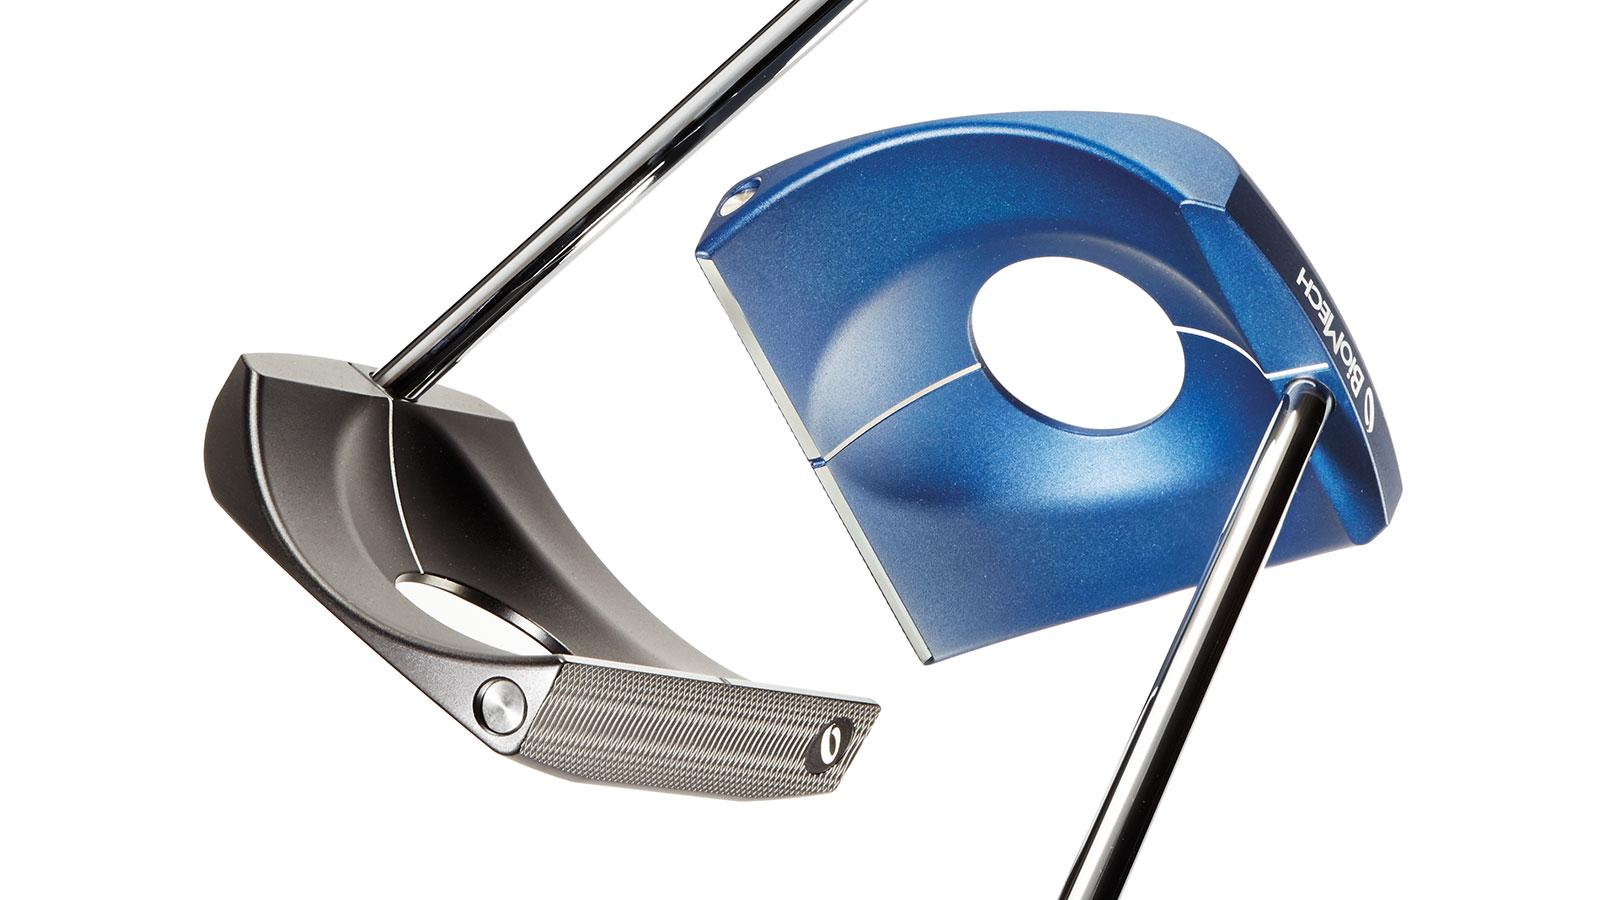 BioMech Acculock ACE Putter